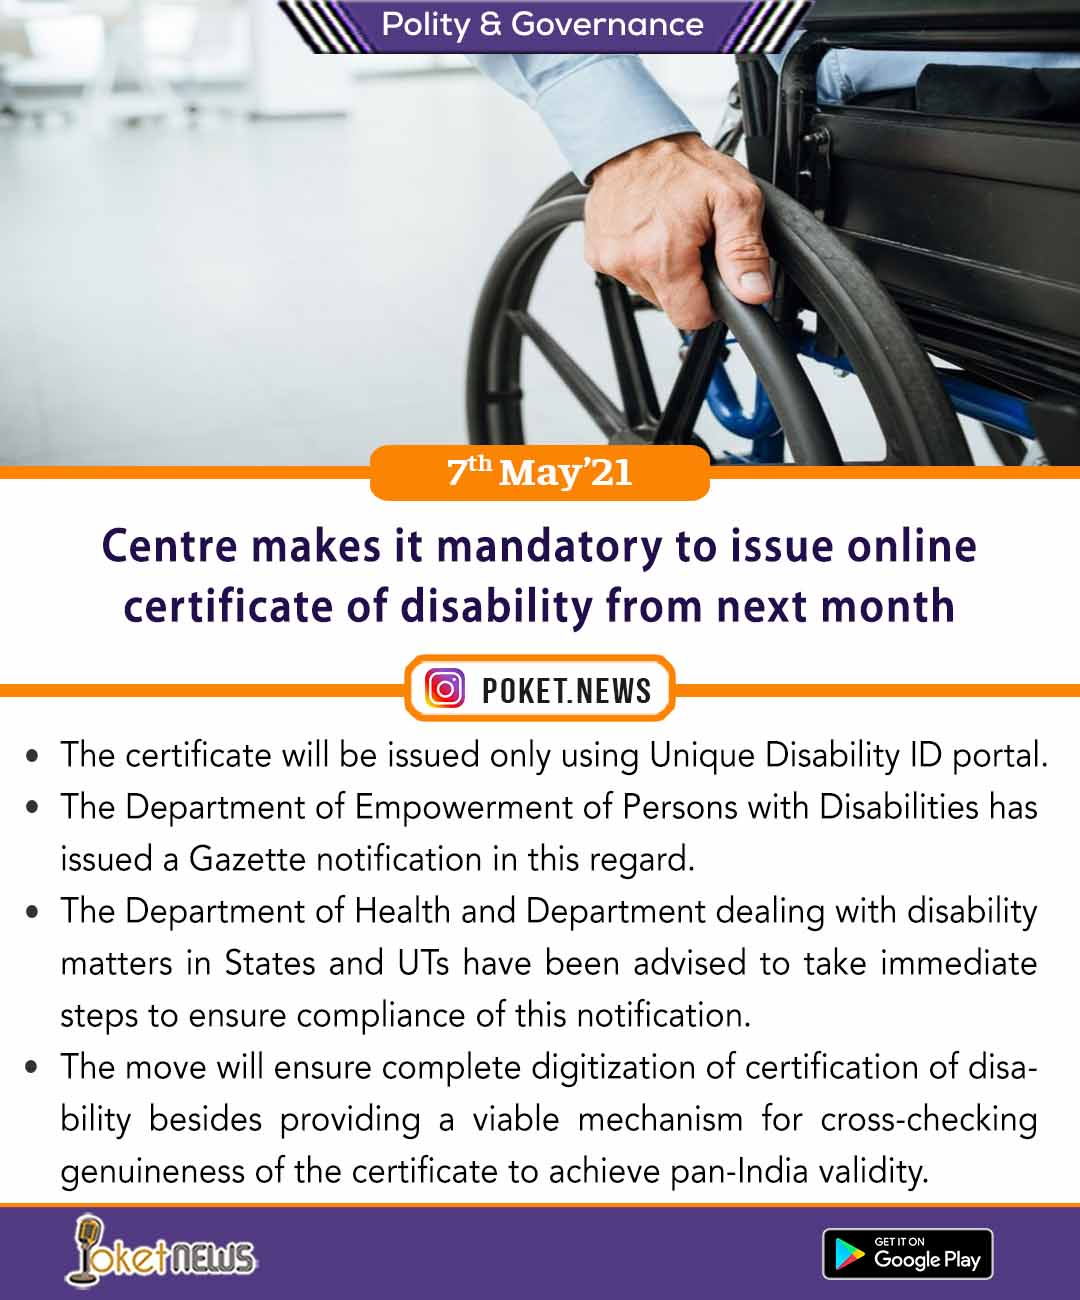 Centre makes it mandatory to issue online certificate of disability from next month